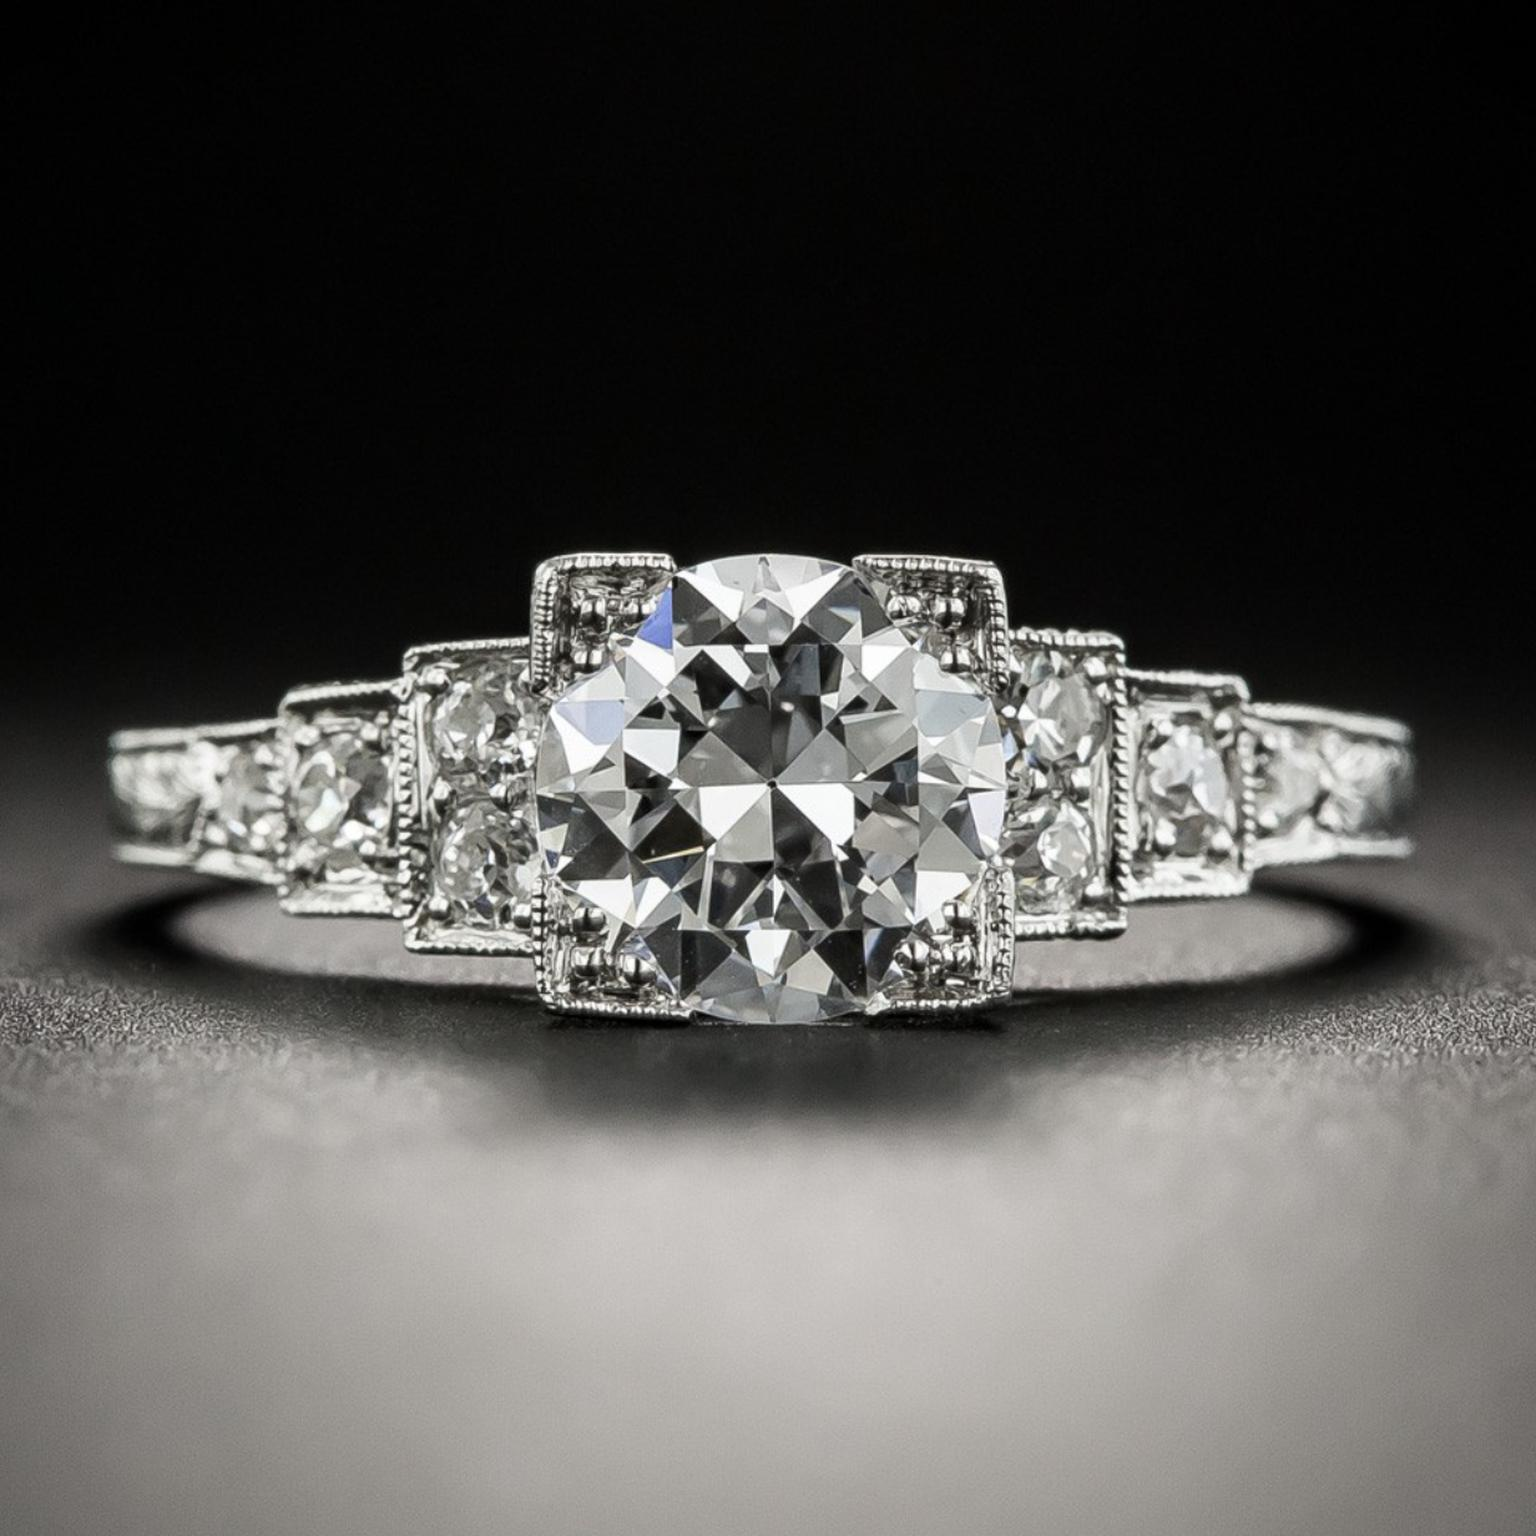 ART DECO DIAMOND PLATINUM ENGAGEMENT RING c